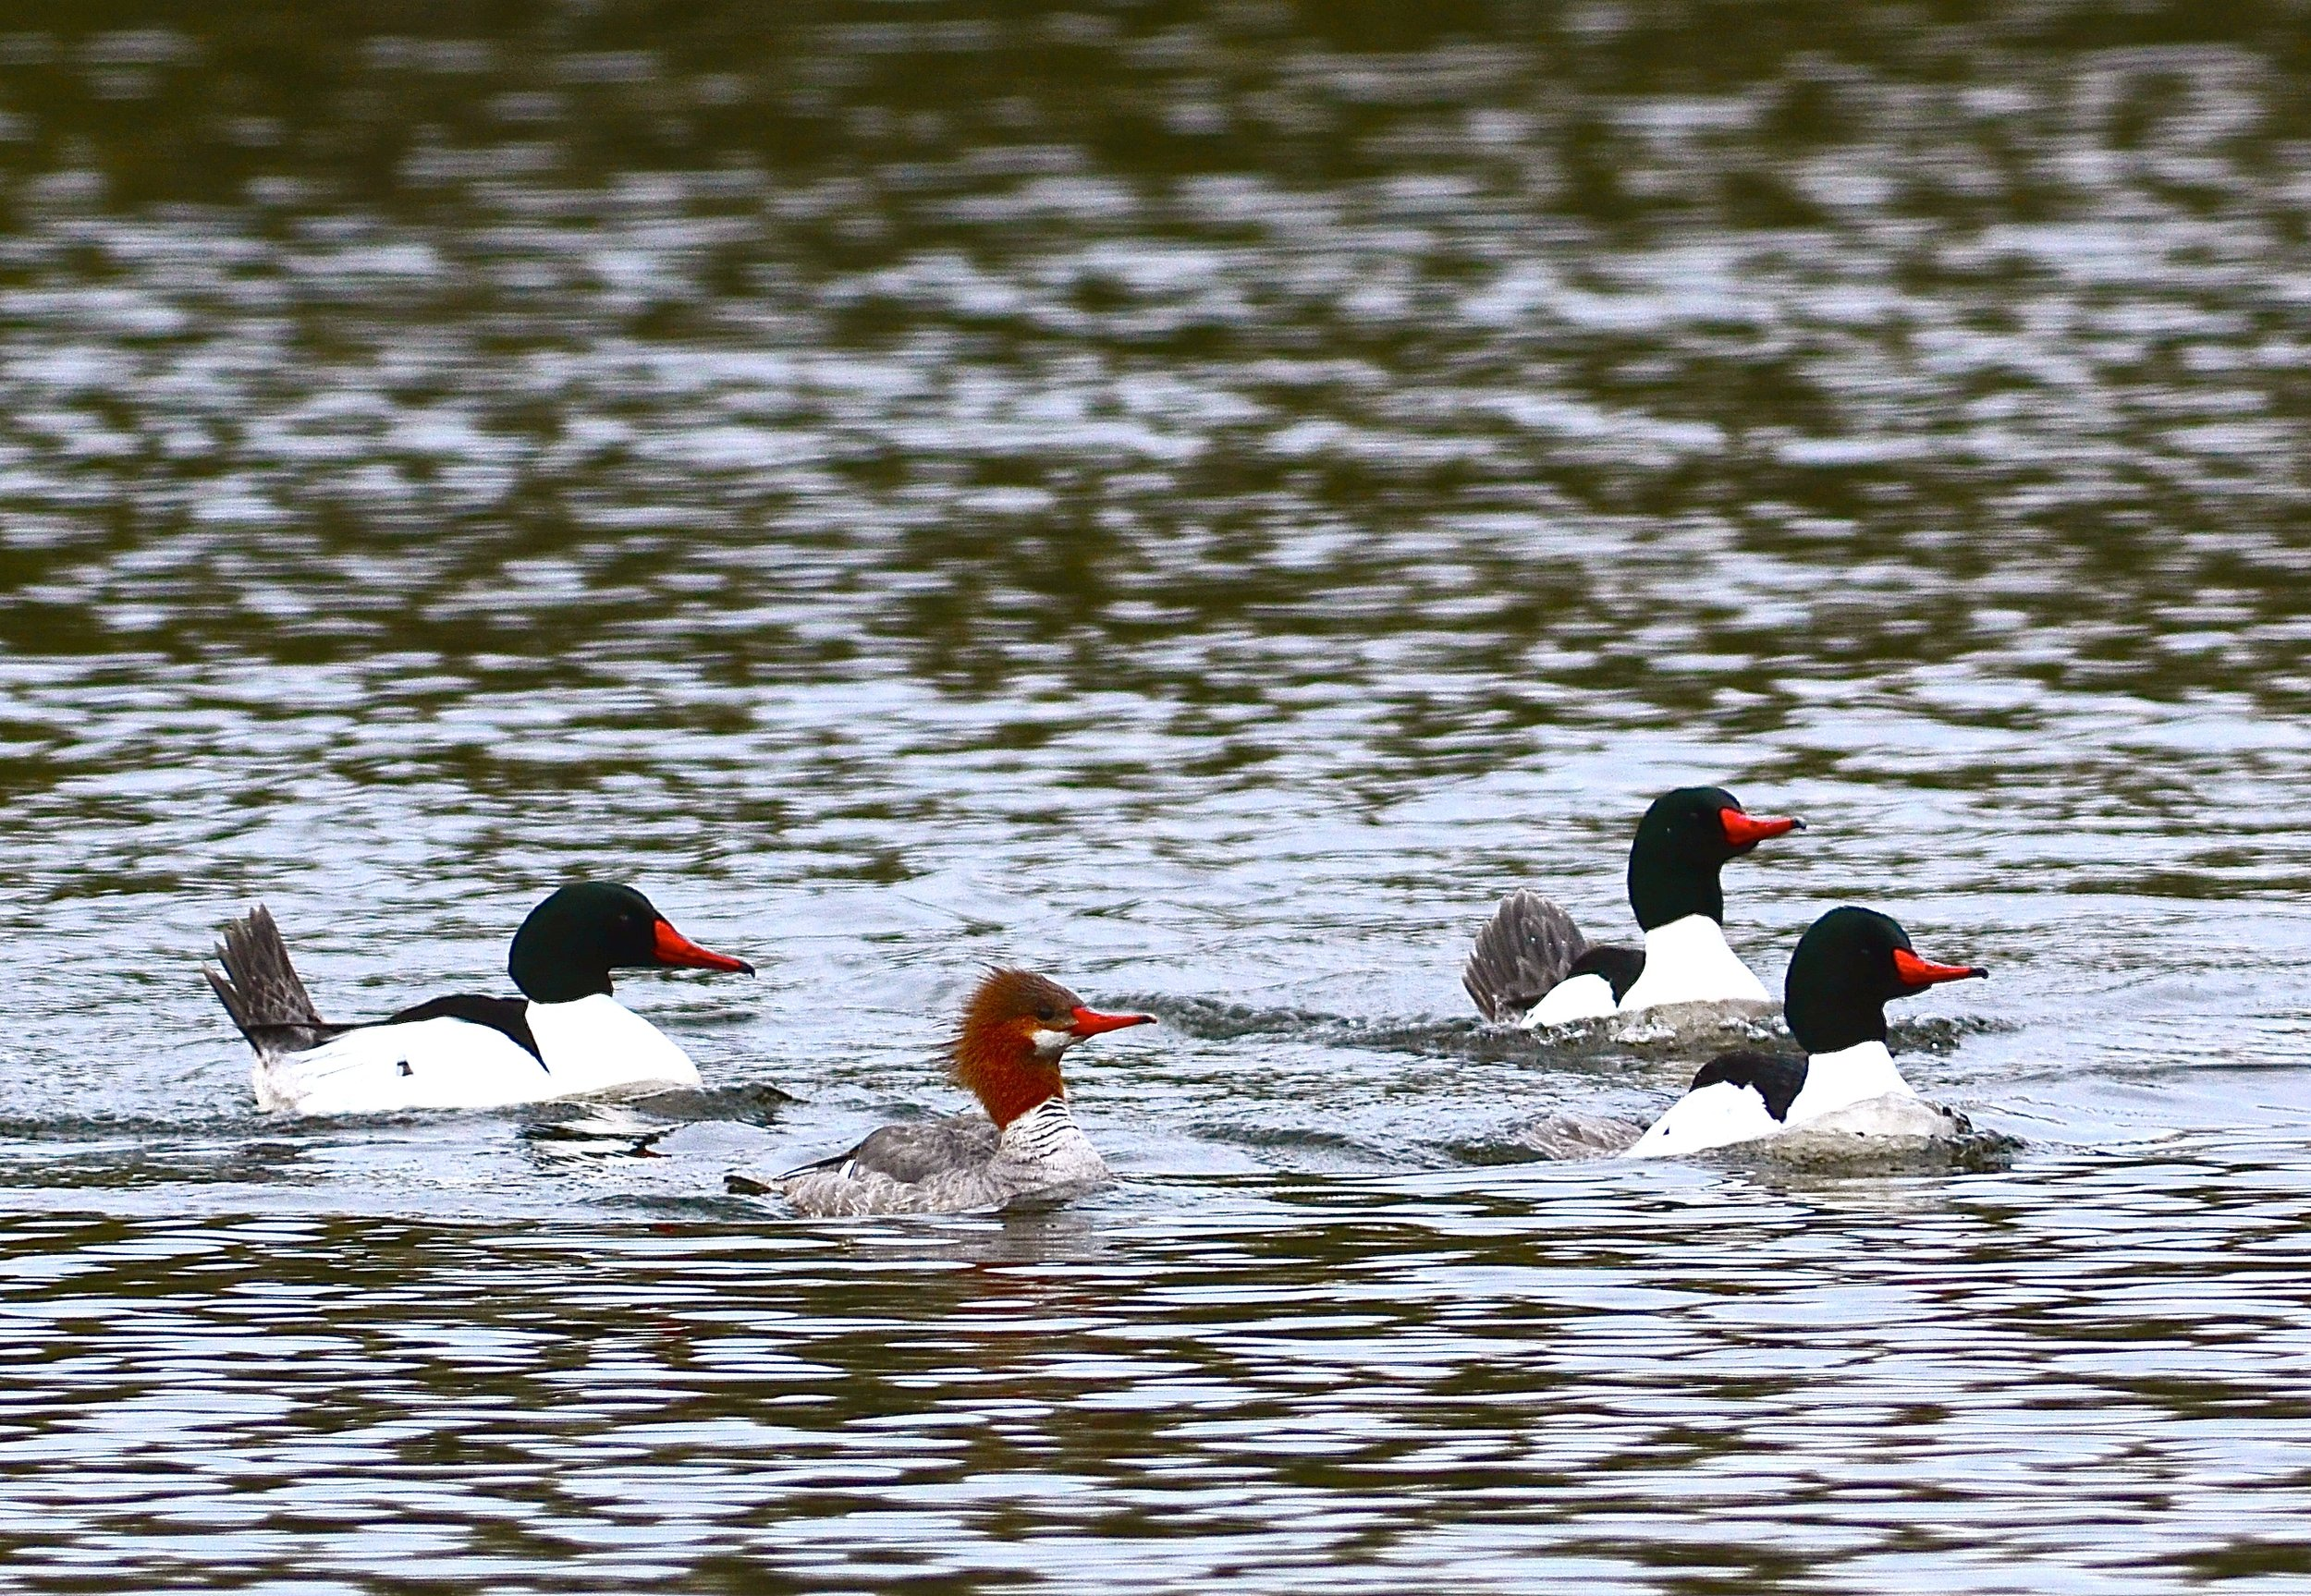 Common Mergansers are hosts to the parasite that causes swimmer's itch.  More work needs to be done to understand the factors that can lower the merganser population on lakes in Michigan.